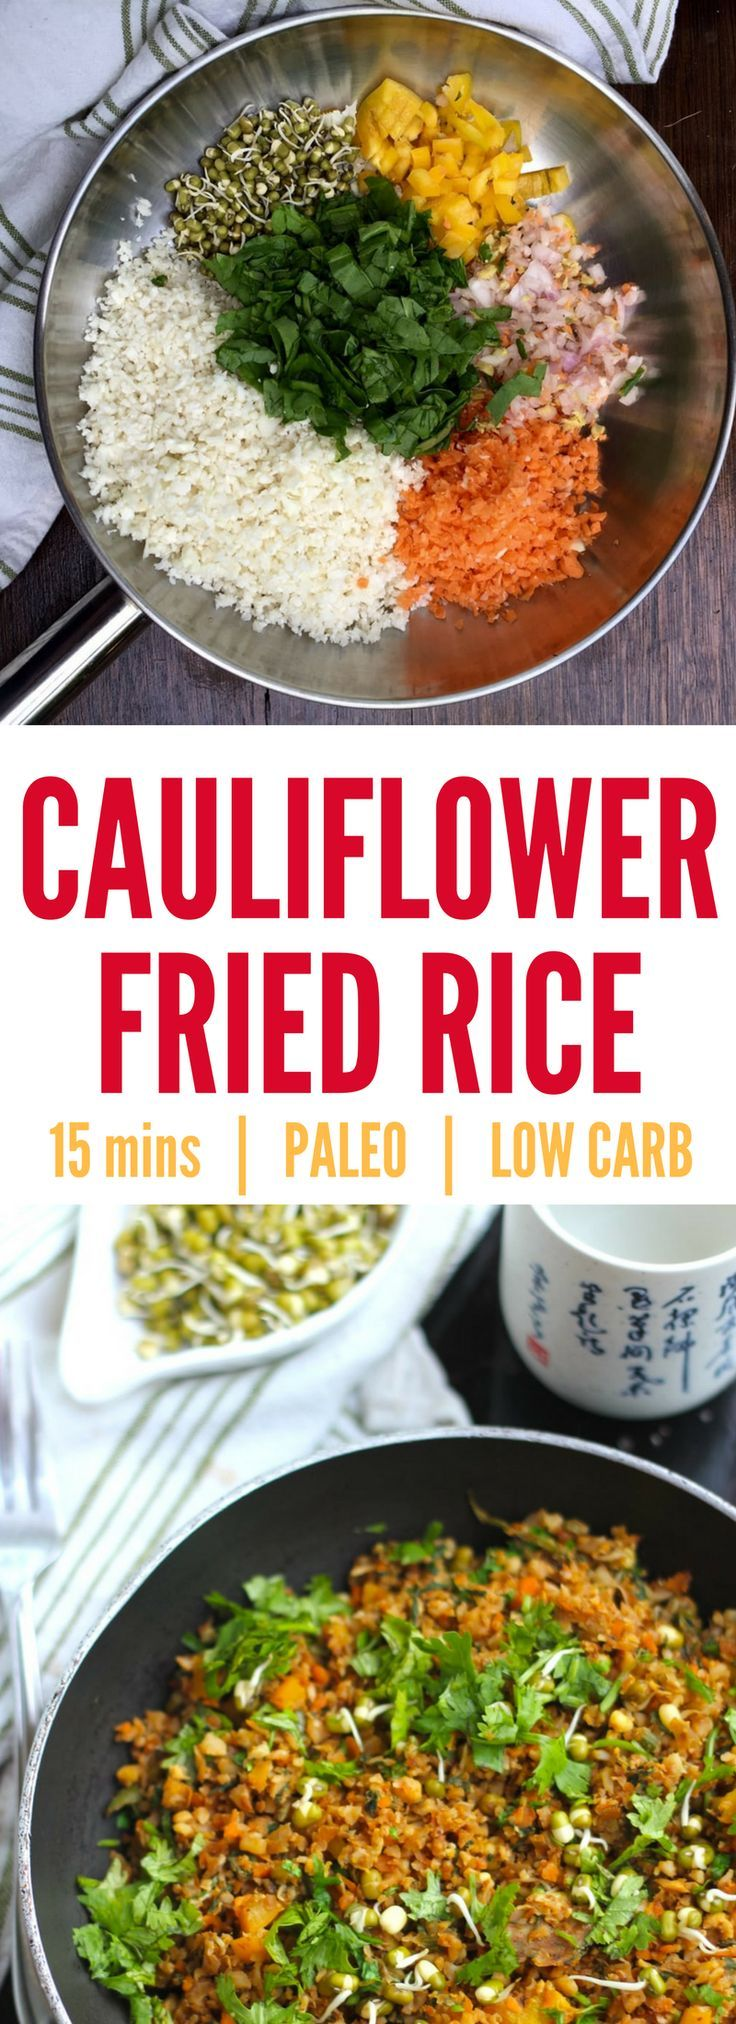 Recipe for quick and easy 15 minute cauliflower egg fried 'rice' -at 171 calories. So delicious you won't miss the rice. Makes an excellent fast day recipe for those on the 5-2 diet. Replace egg with tofu if you're vegan!